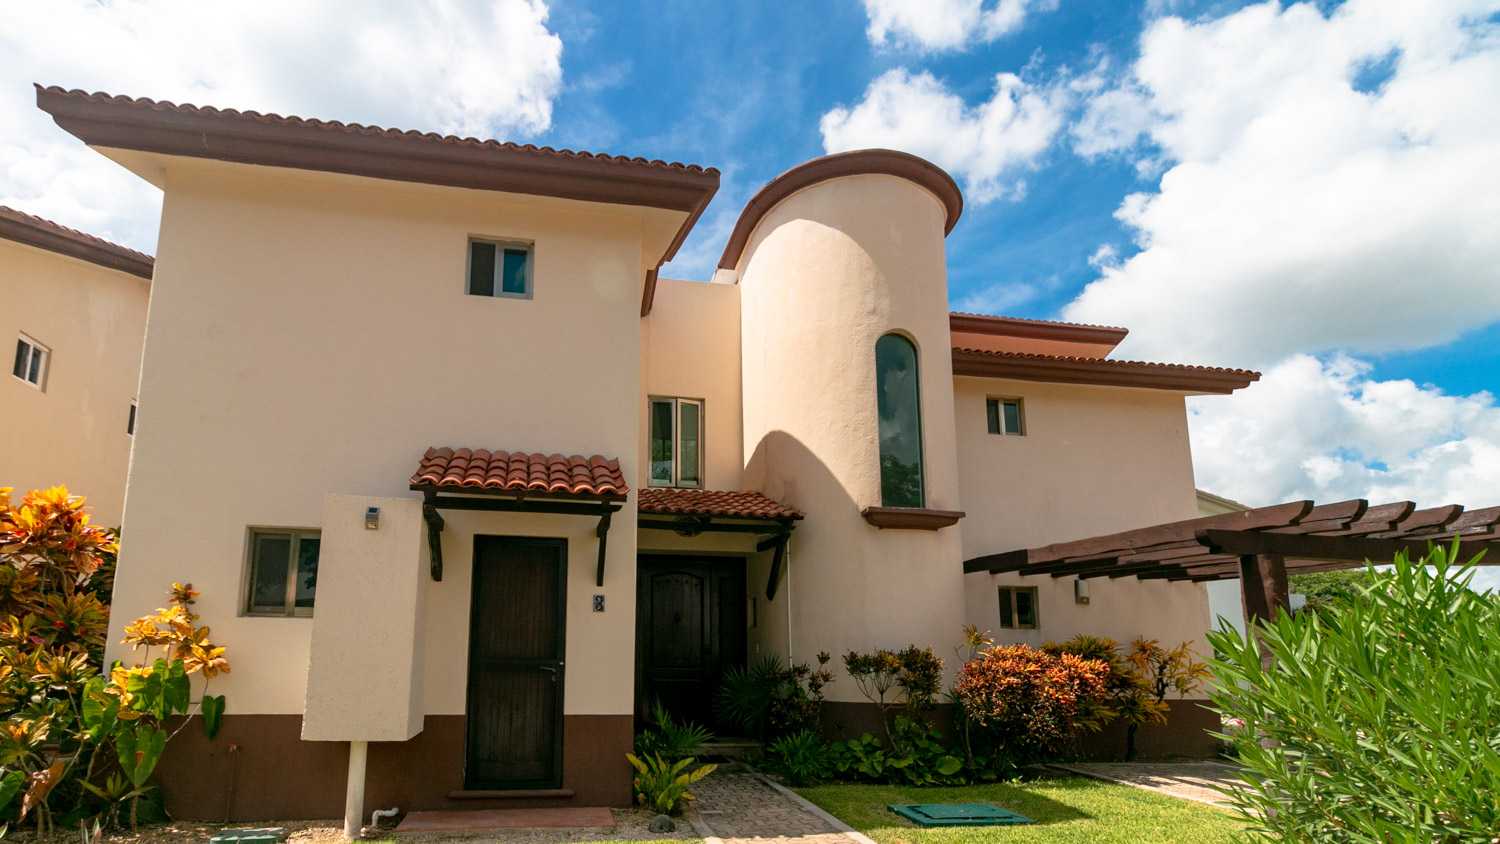 21334 Spacious 3 bedroom house in Playacar Phase  - Home